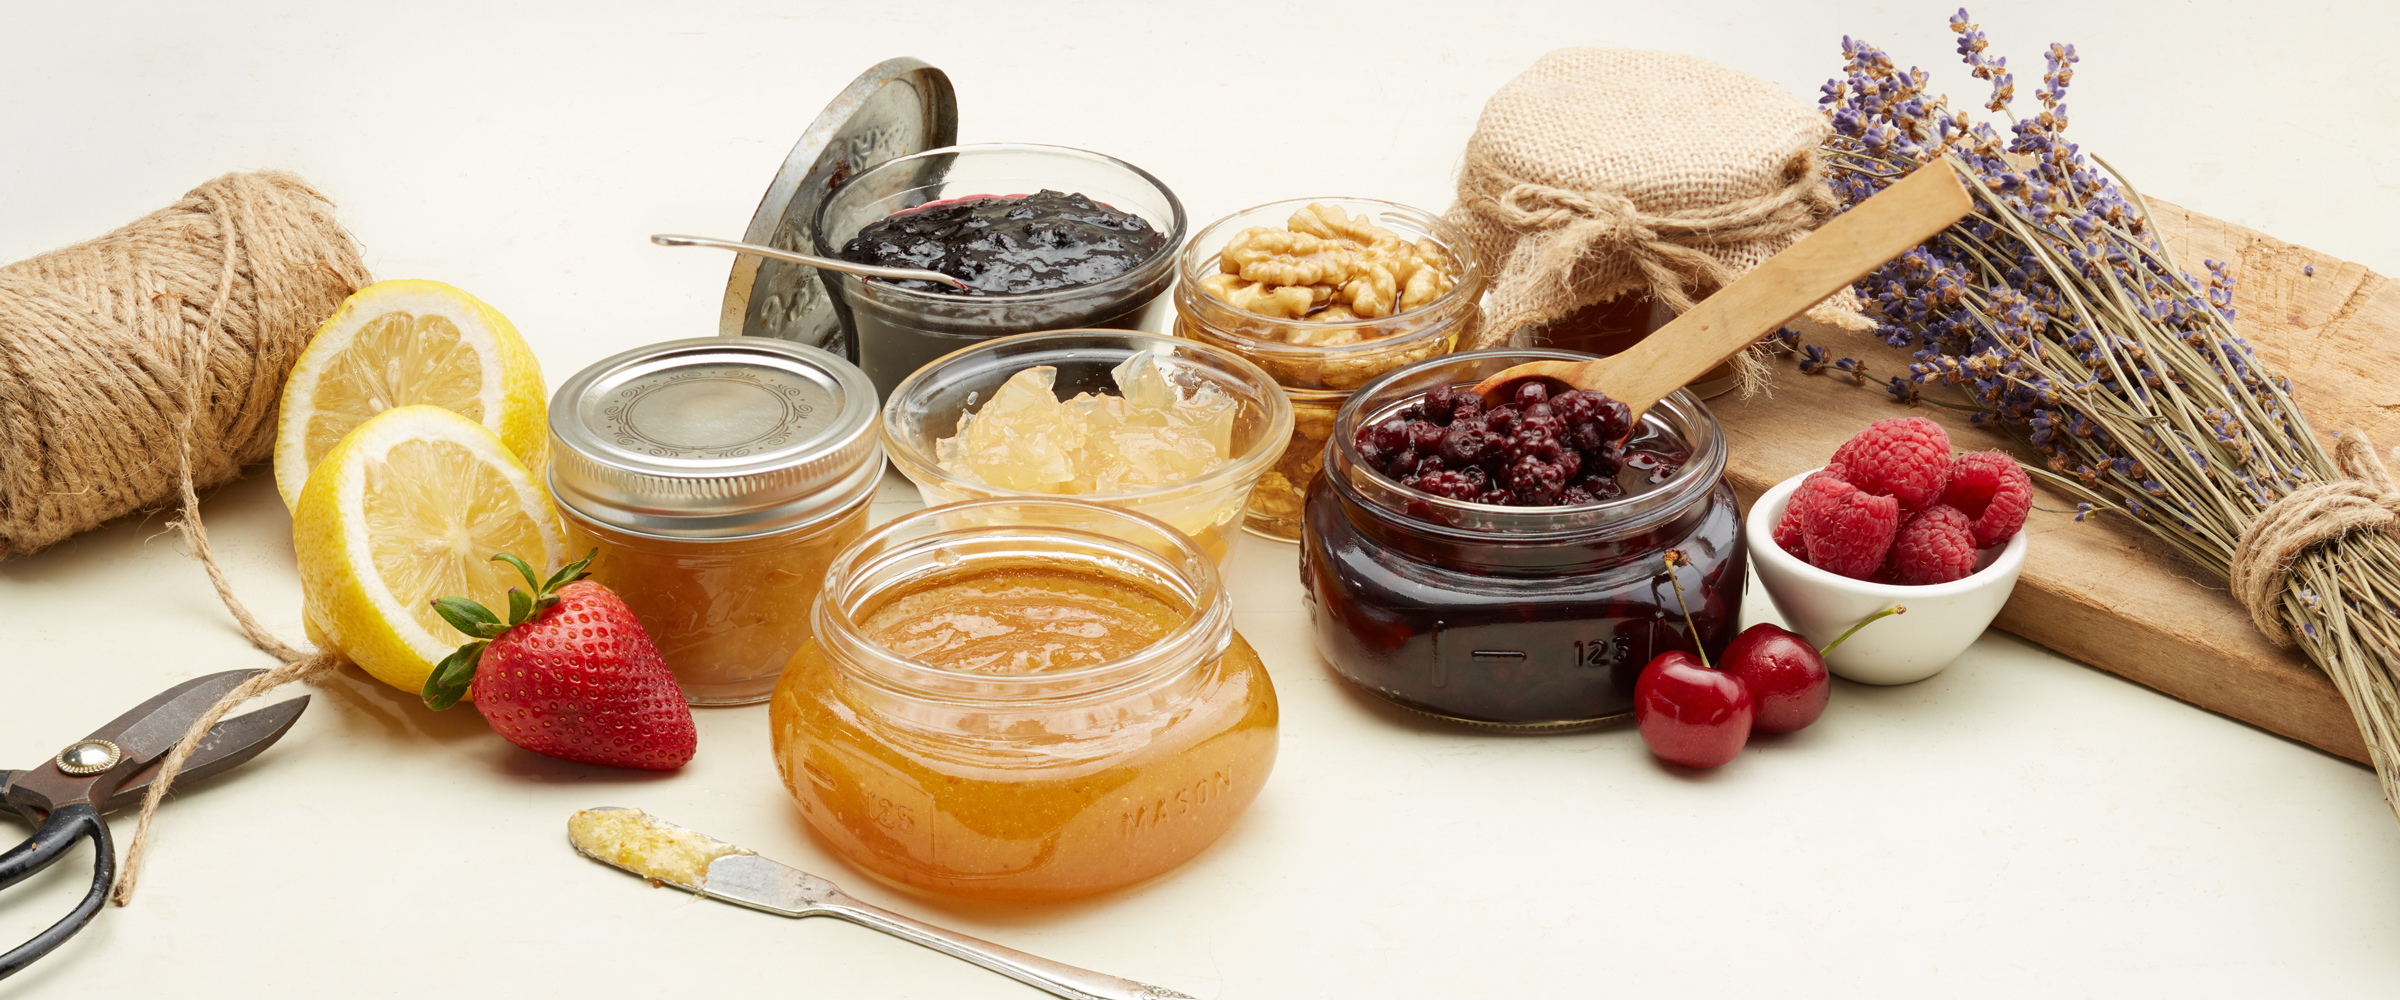 Spreads, Jams & Preserves